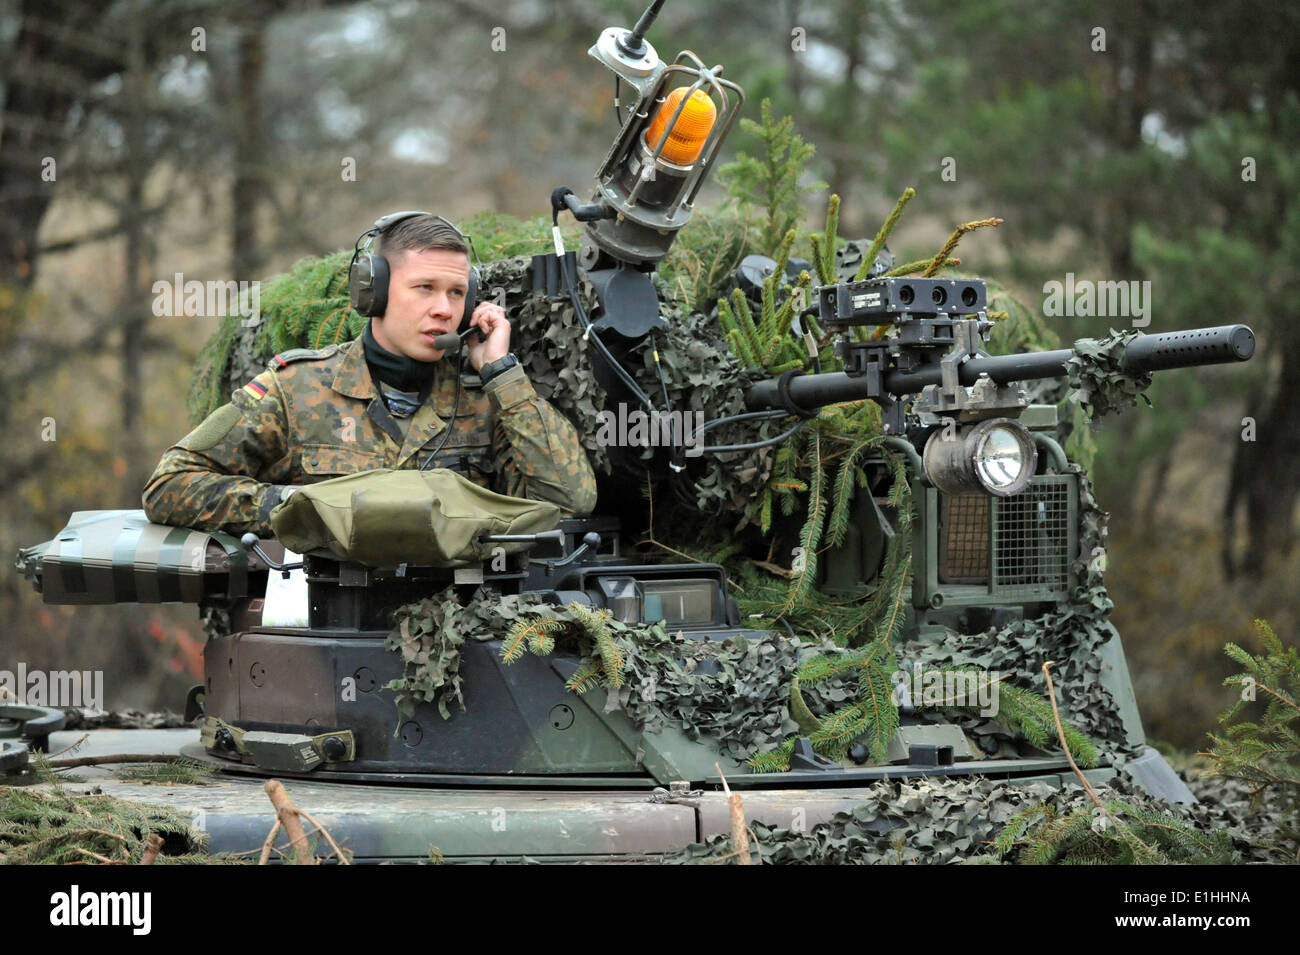 A German Army Soldiers in a Marder infantry fighting vehicle scans the battlefield during Saber Junction 2012 at the Joint Mult - Stock Image